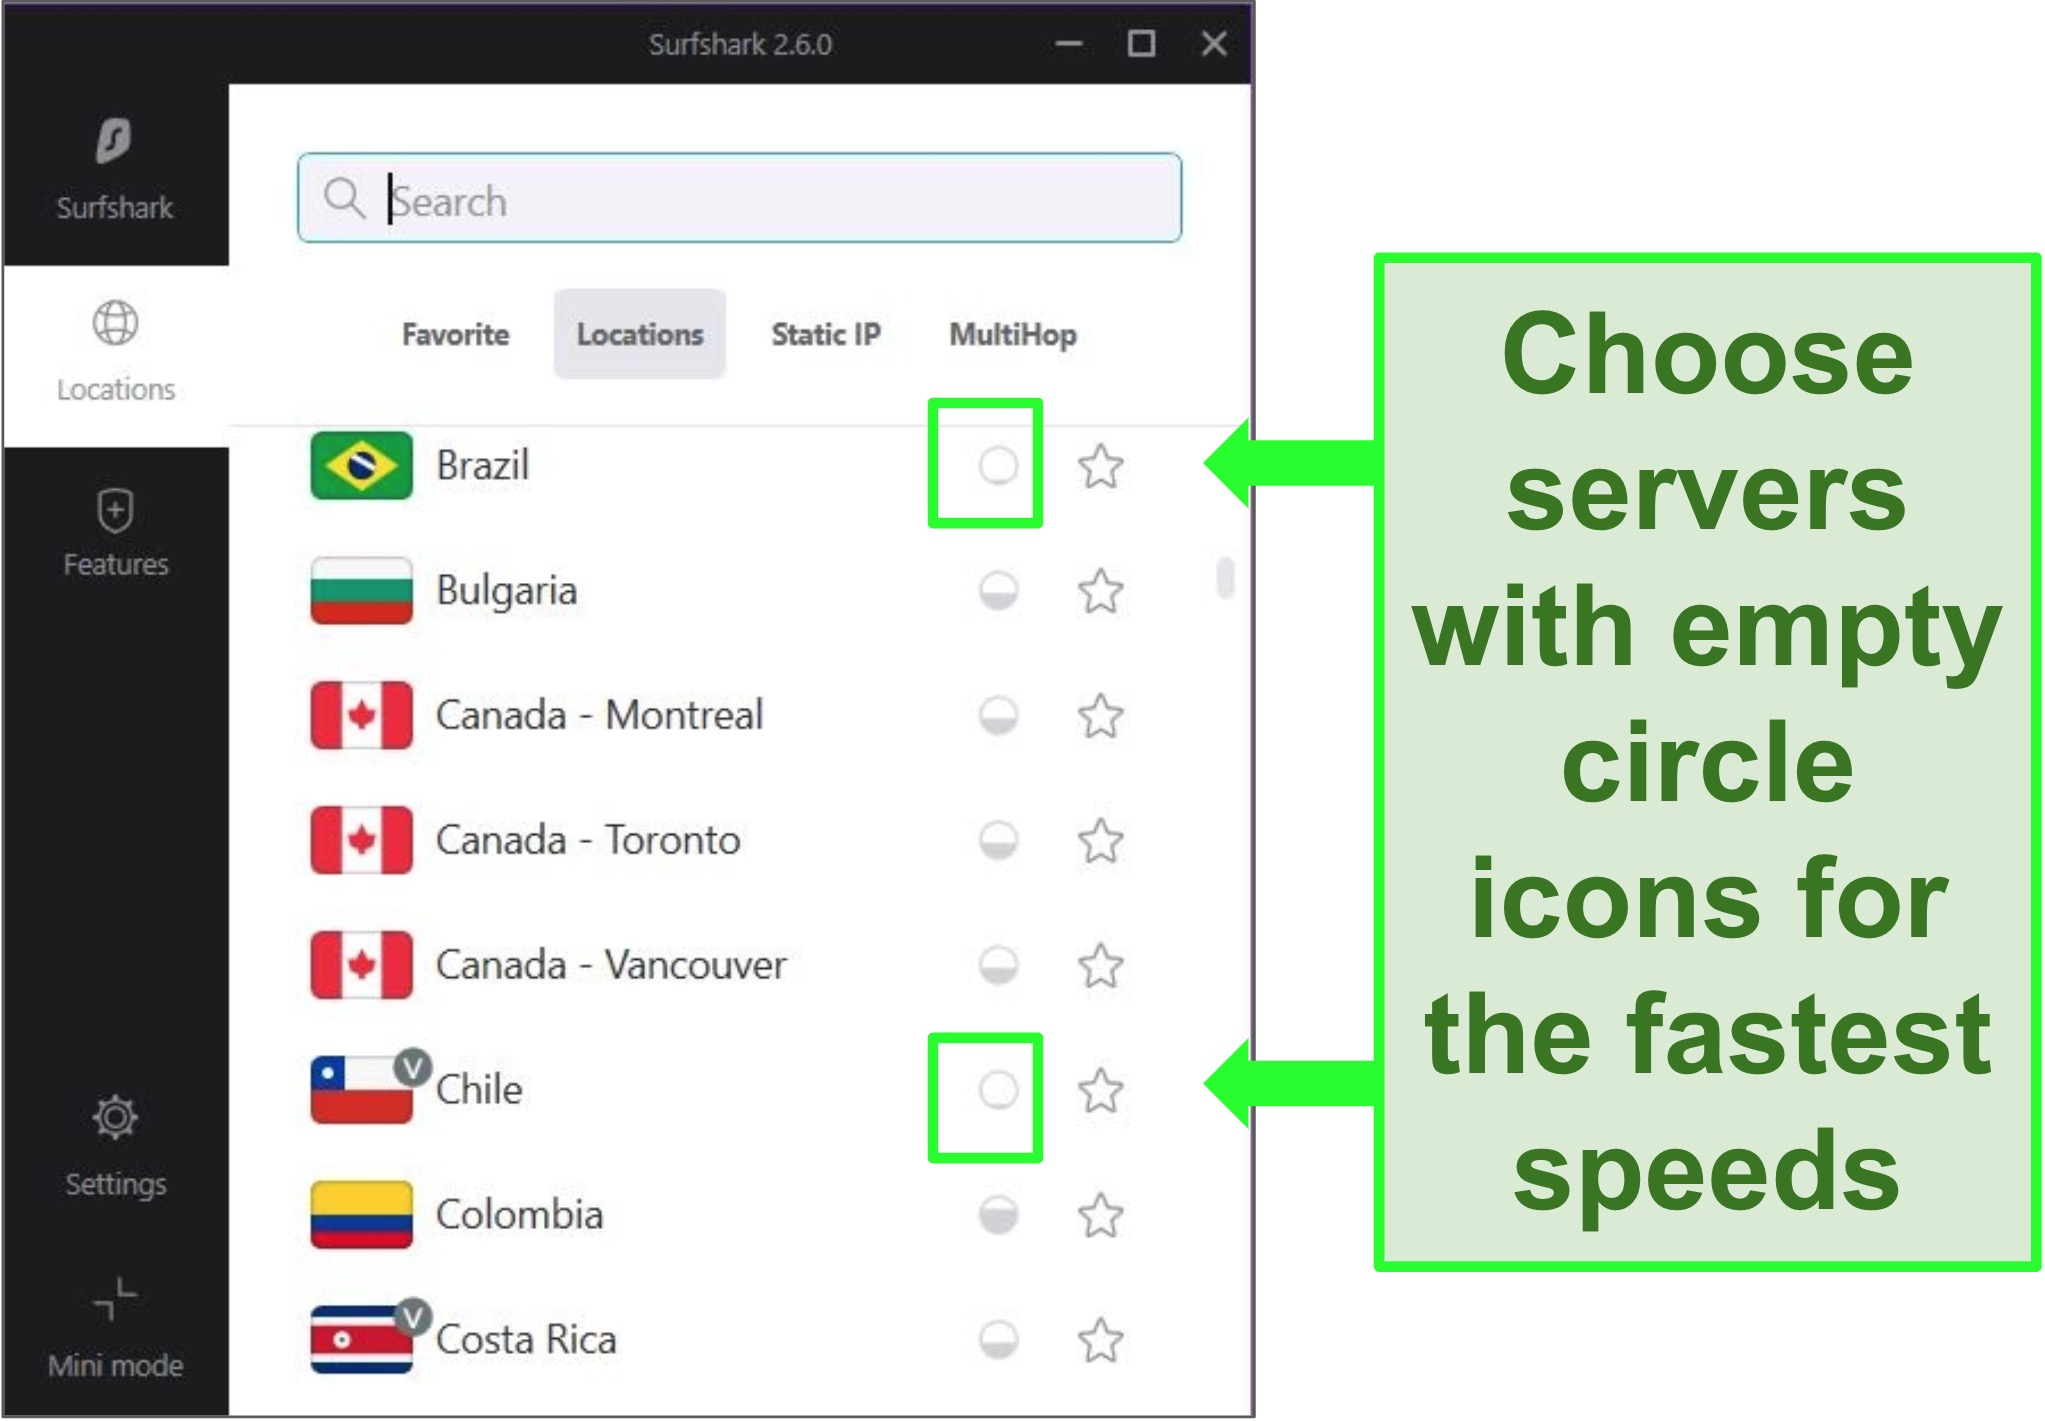 surfshark interface showing server options in different countries and server load